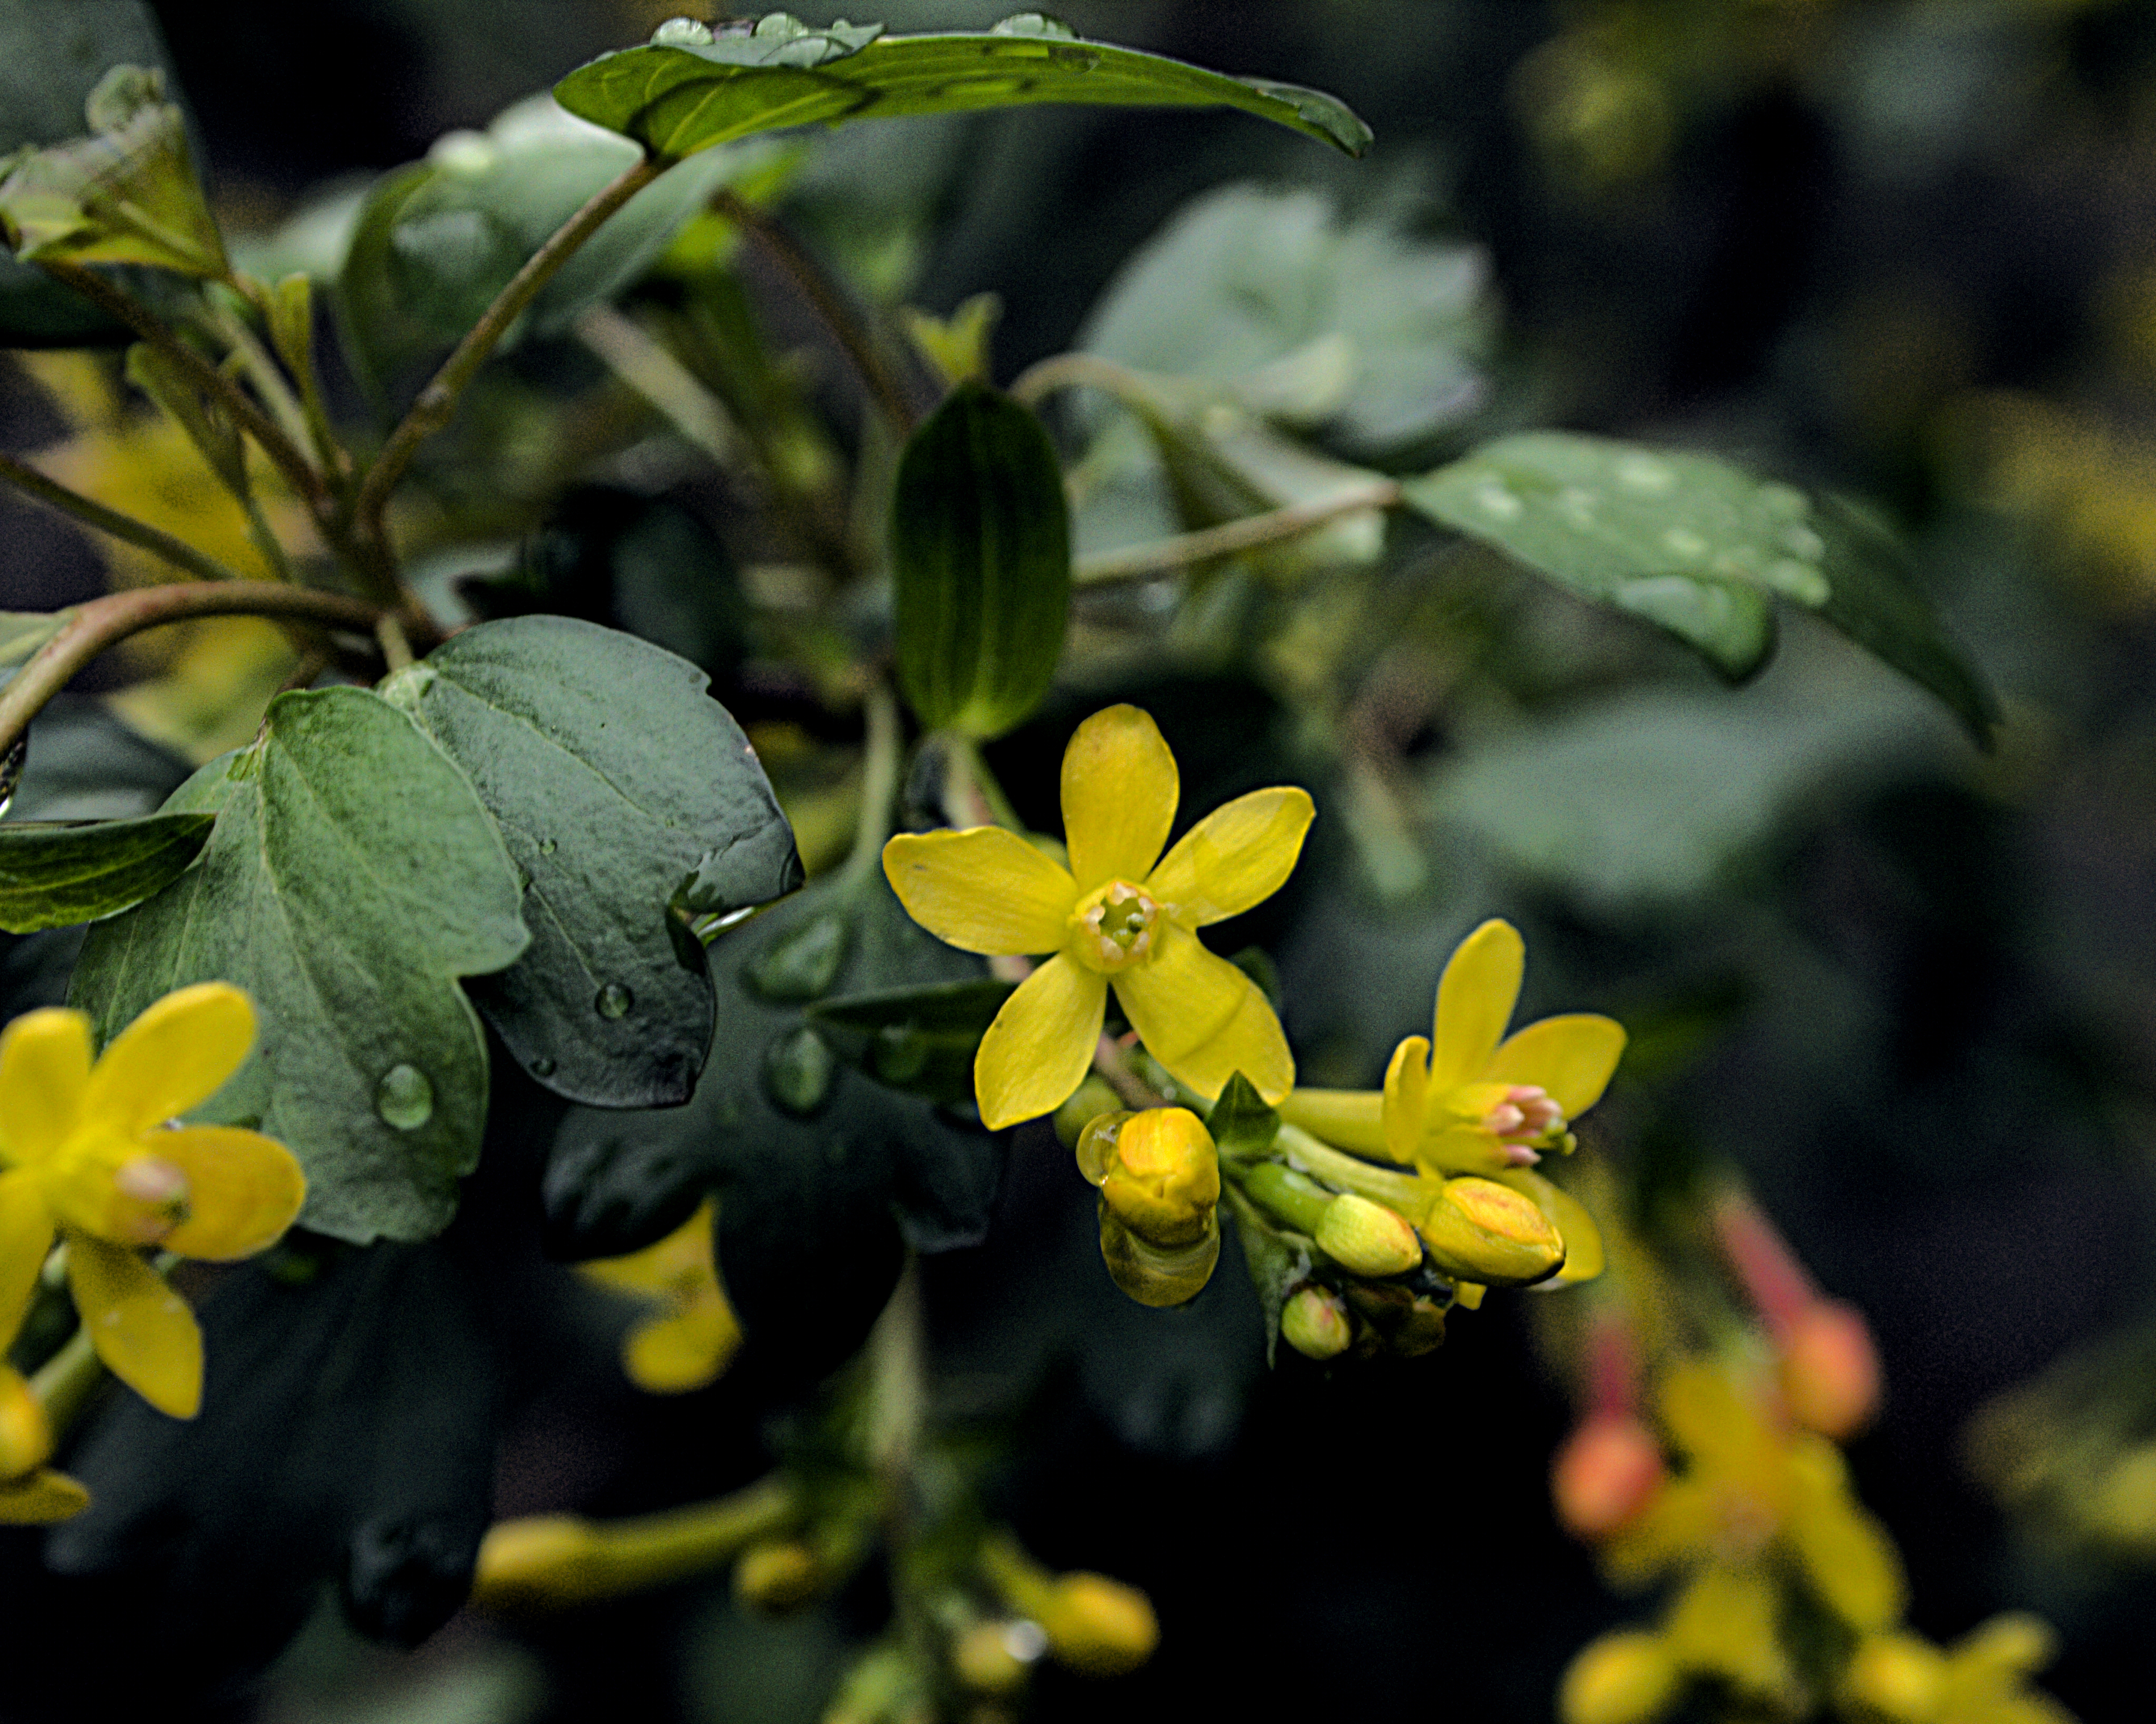 Image of golden currant